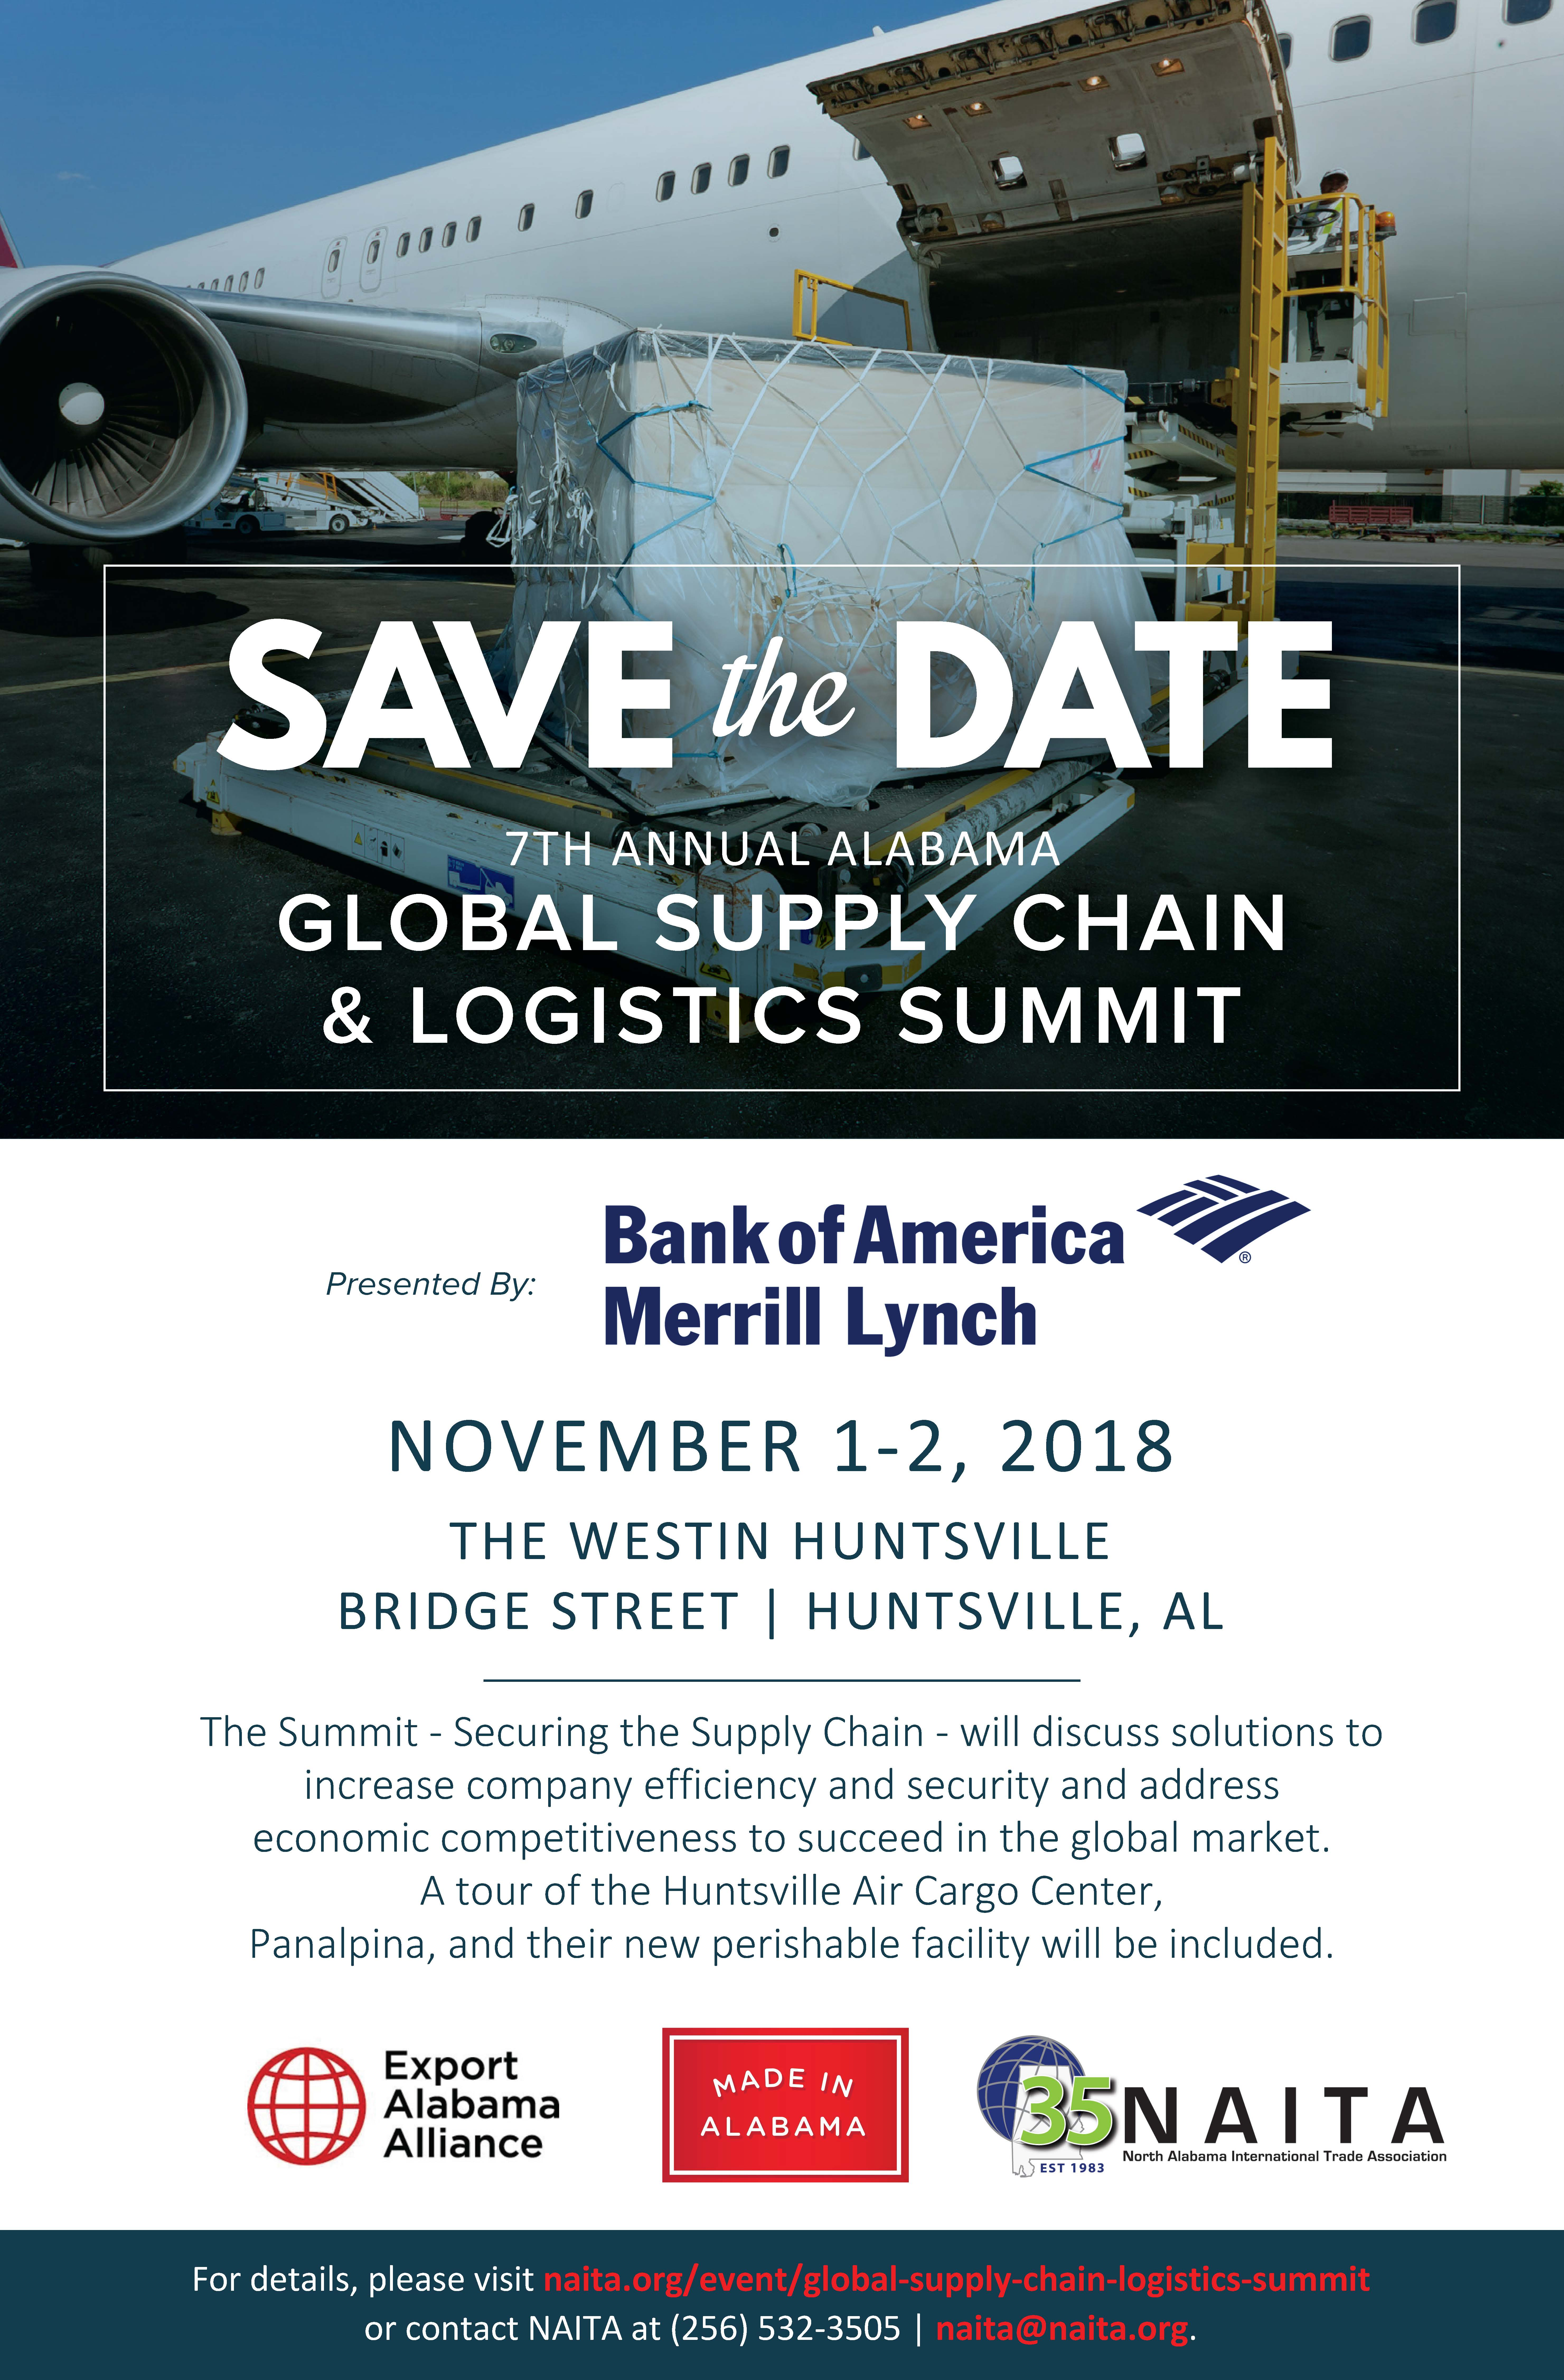 2018 GSC Save the Date apb